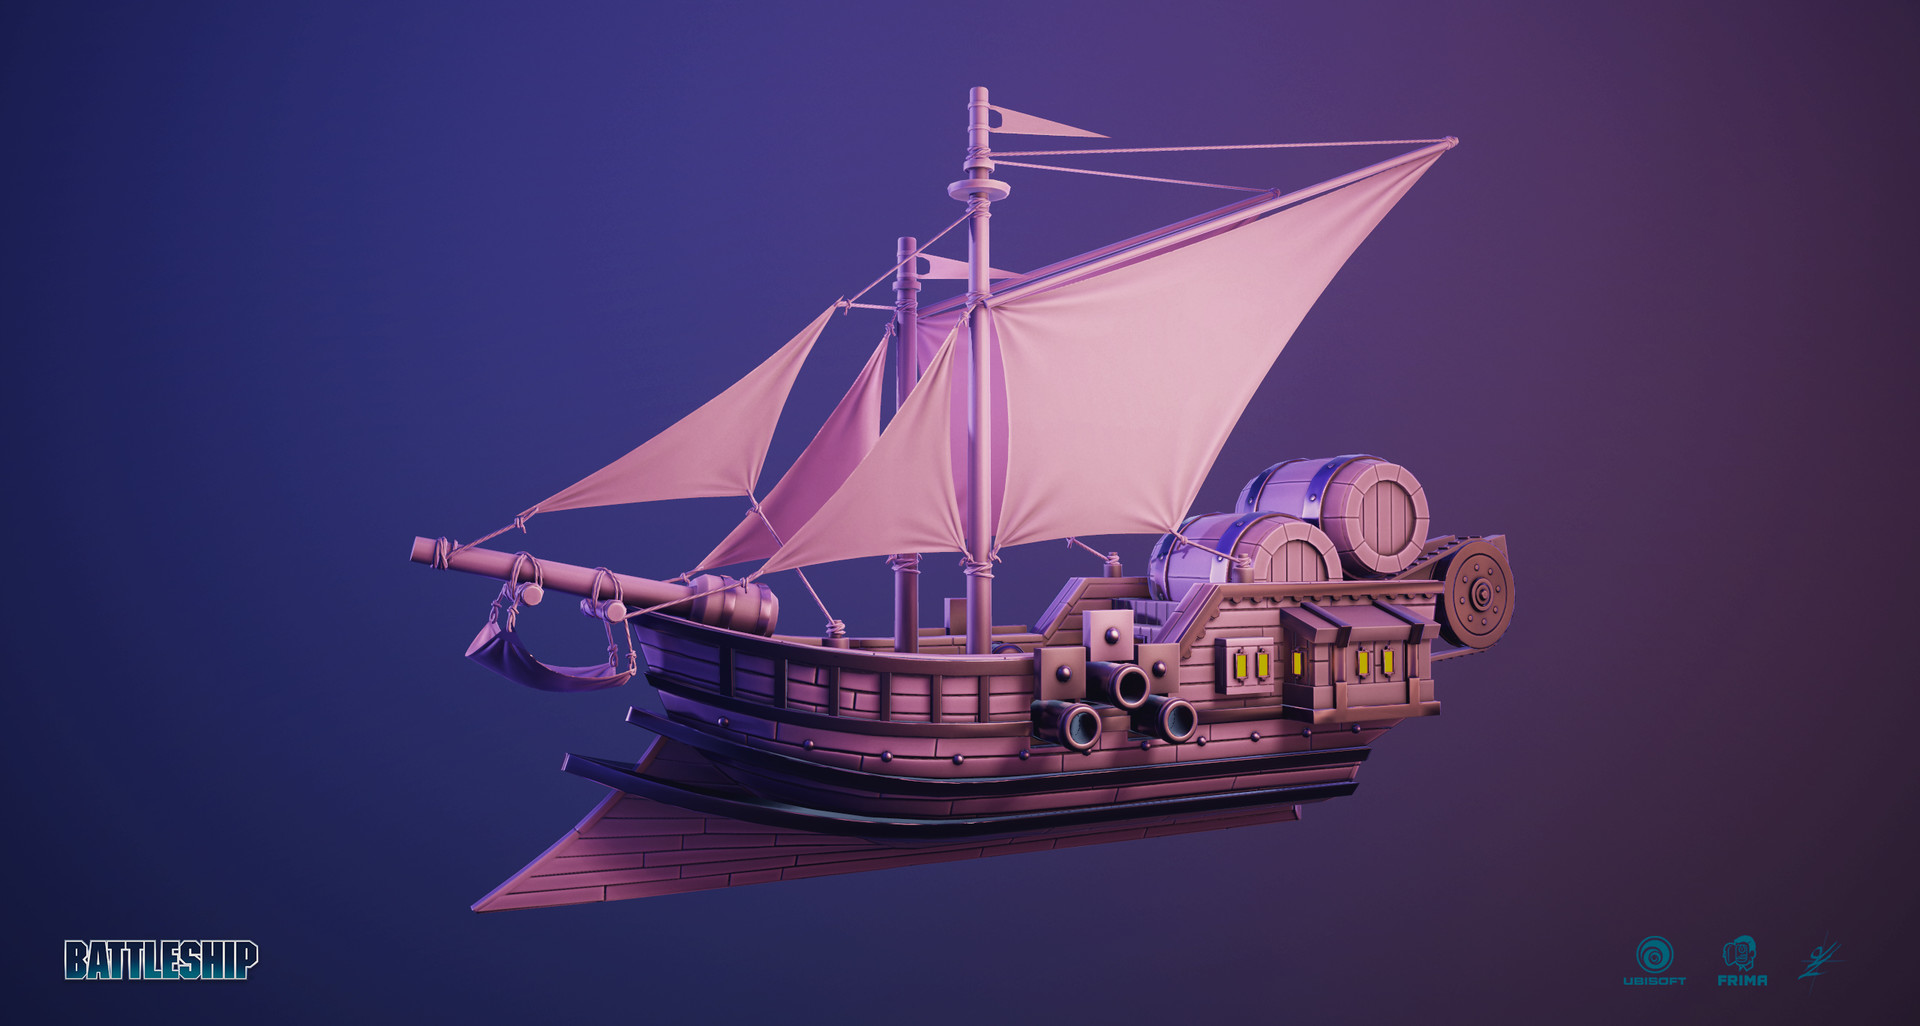 Guillaume lachance pirate destroyer 02